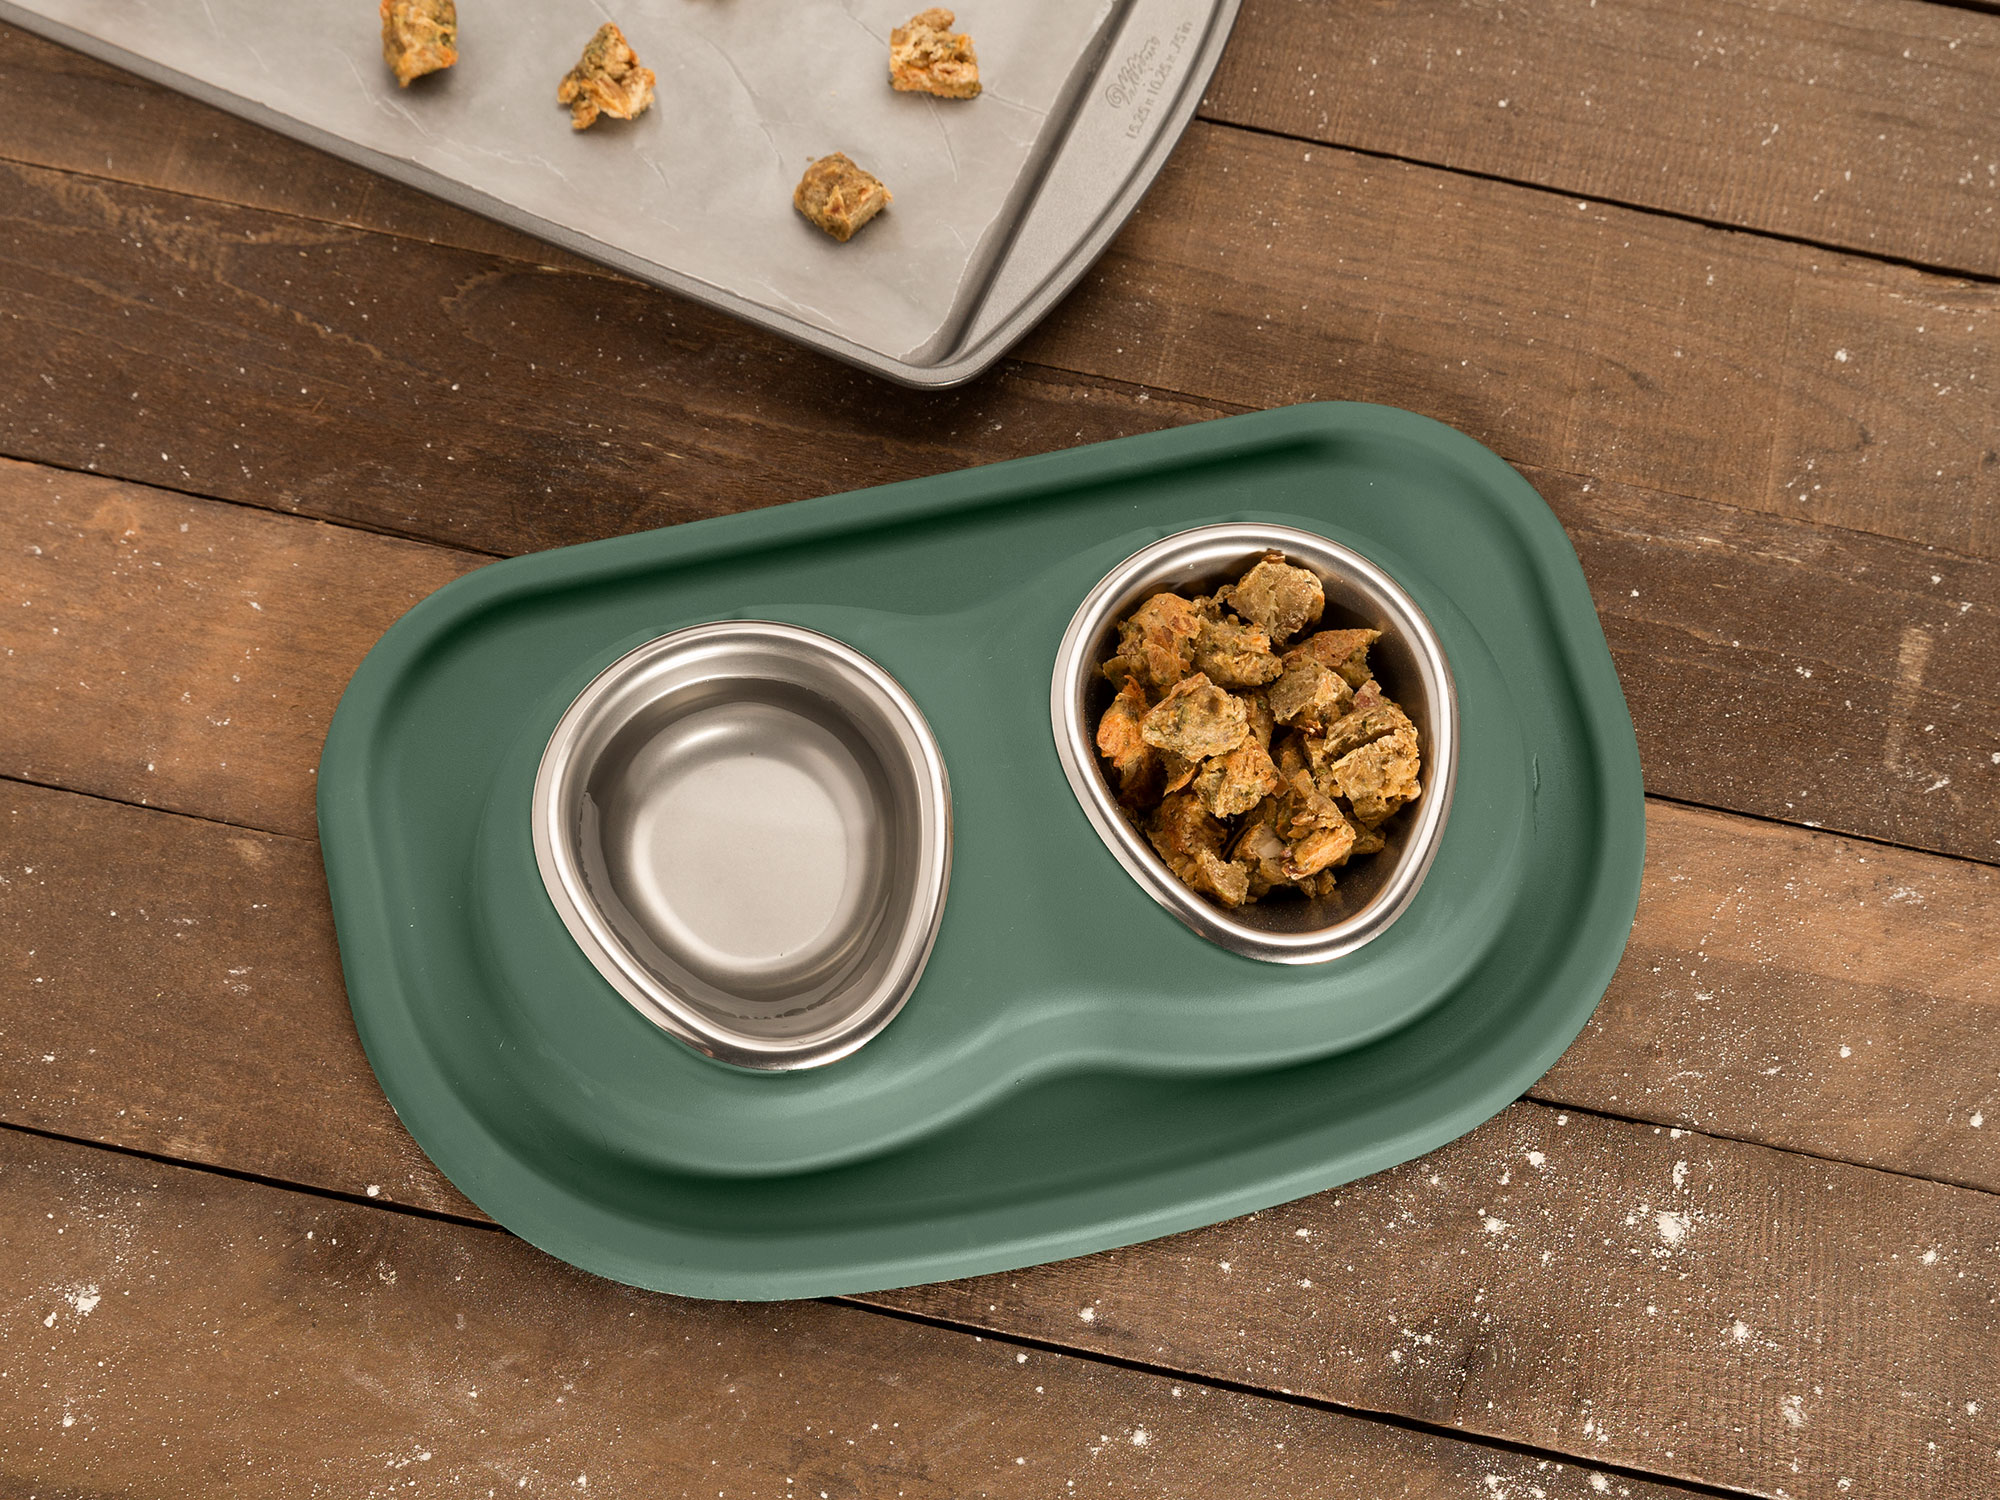 Catnip_Croutons-3_Pet_Bowls_cookie_Sheet